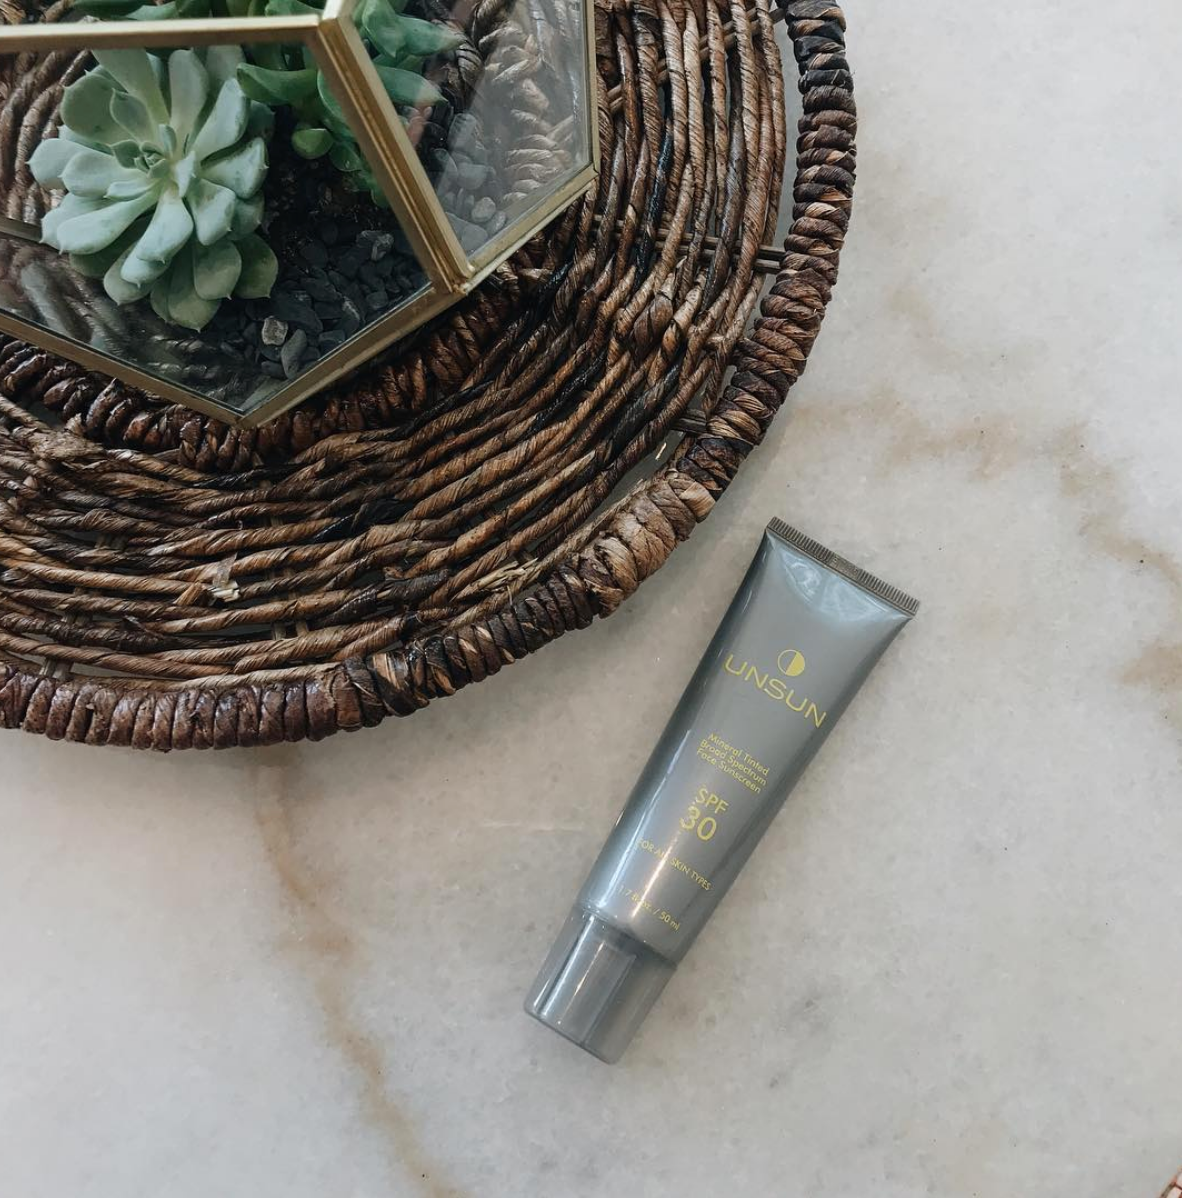 UnSun Cosmetics is the SPF-Savvy Brand for Women of Color -